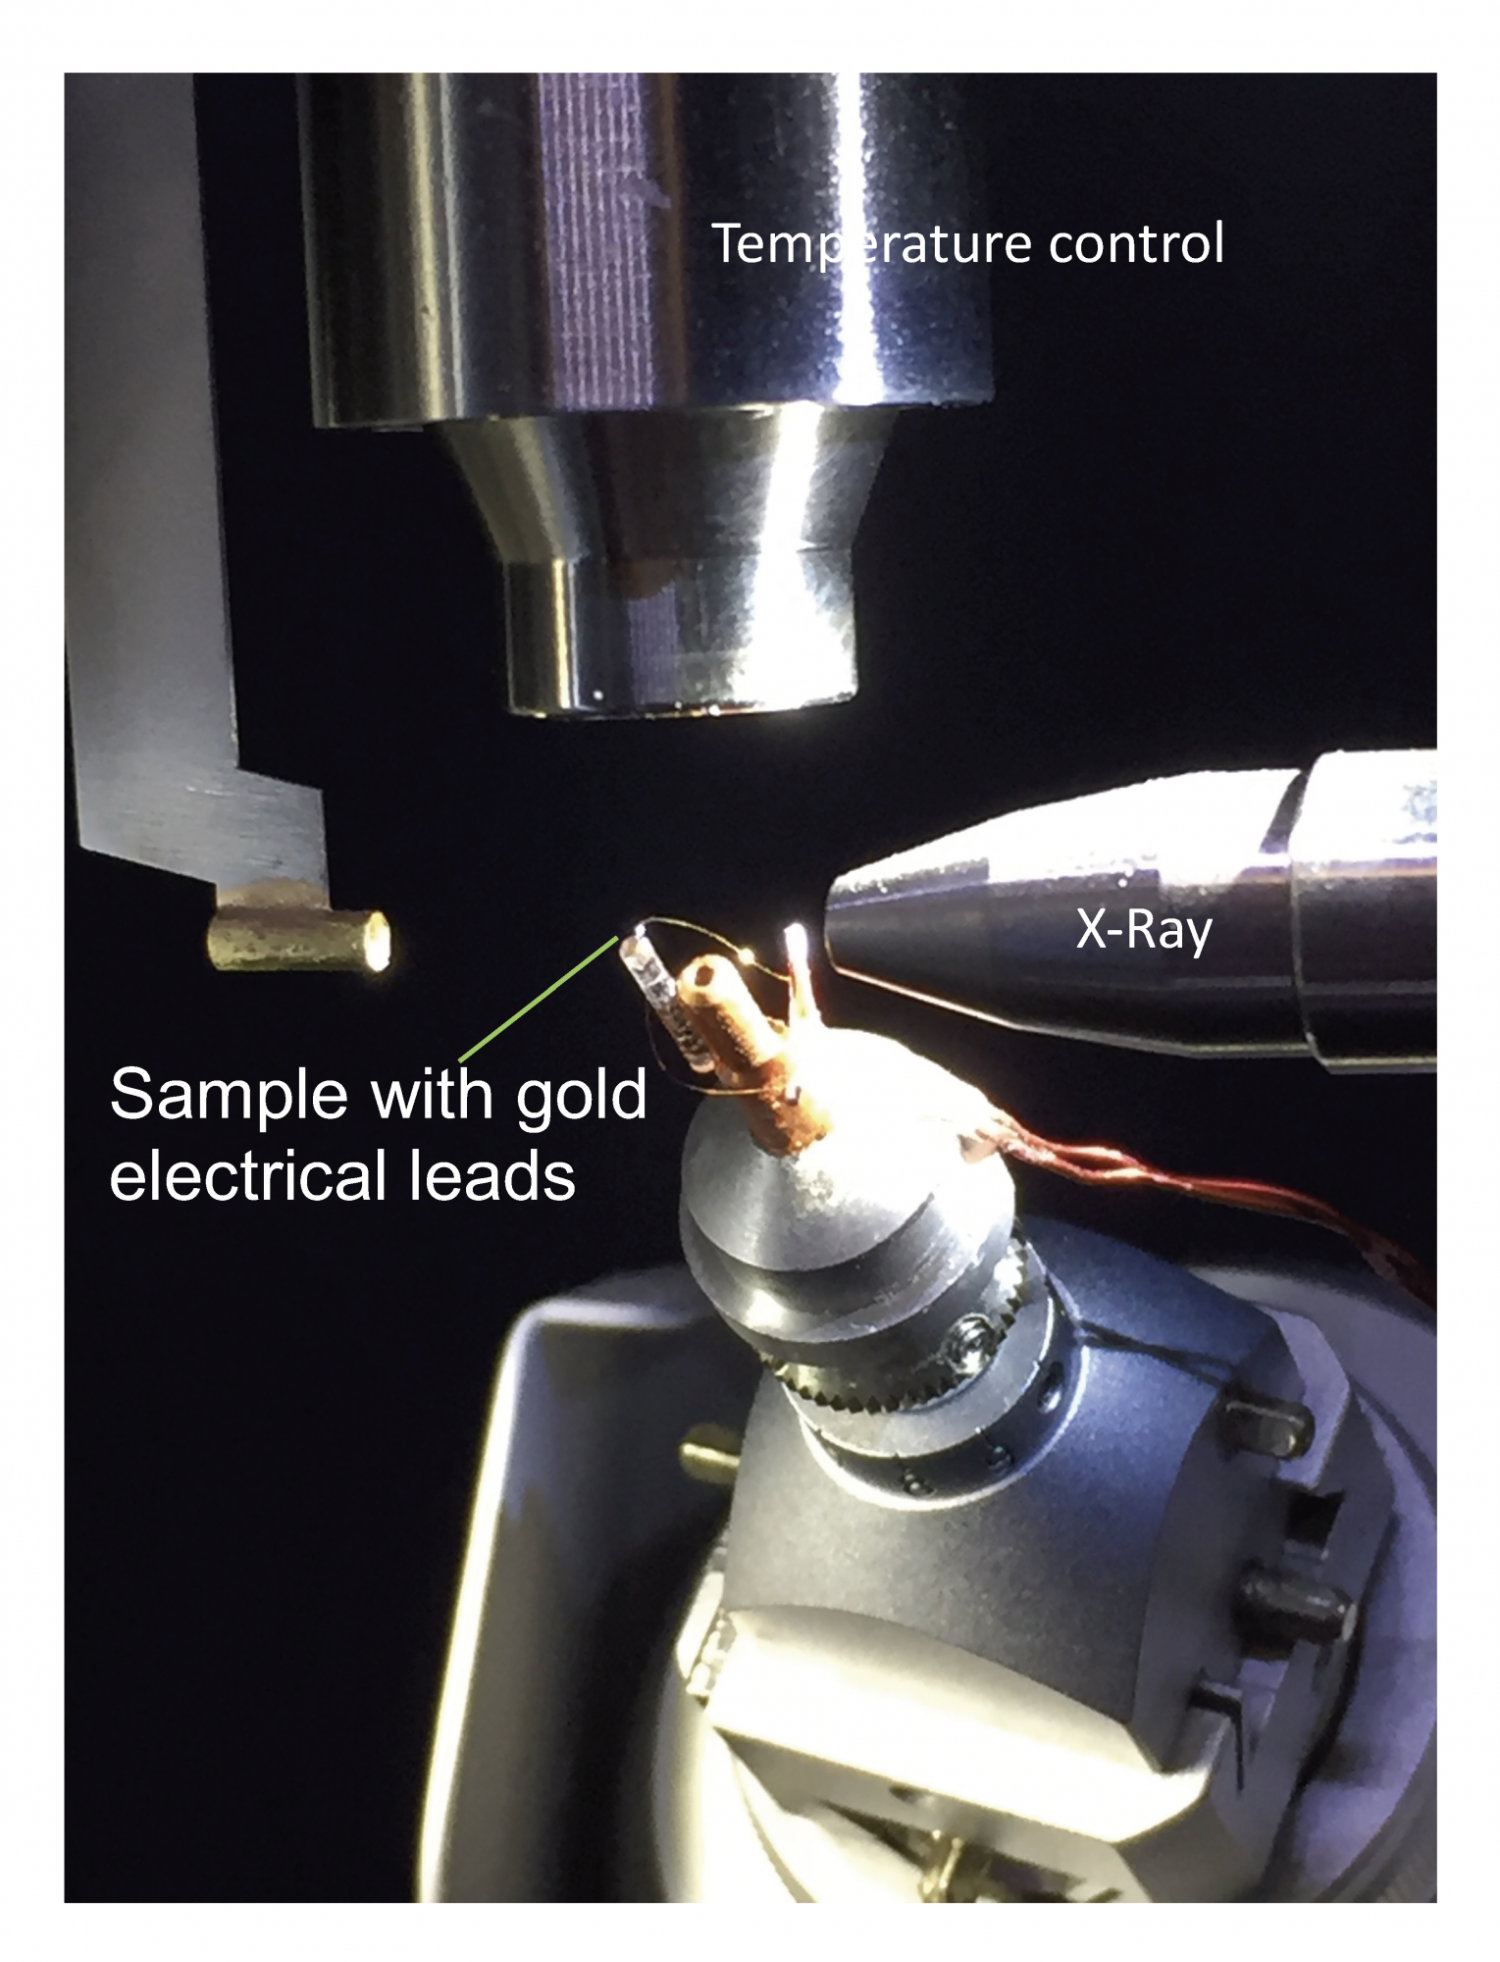 Single-crystal X-ray diffraction with electrical current